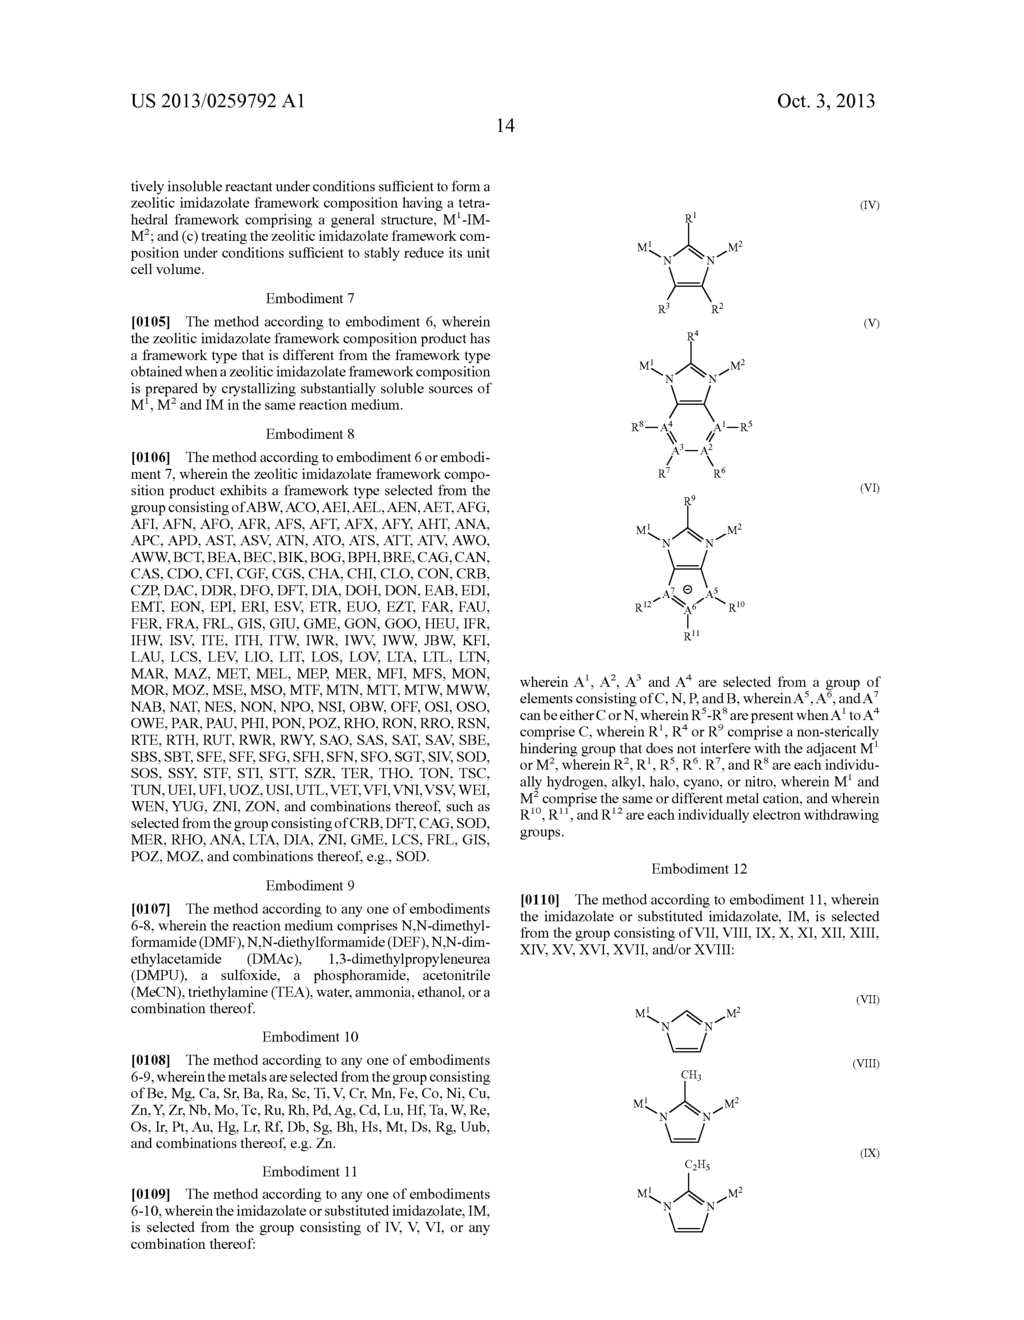 EMM19star NOVEL ZEOLITIC IMIDAZOLATE FRAMEWORK MATERIAL, METHODS FOR     MAKING SAME, AND USES THEREOF - diagram, schematic, and image 41